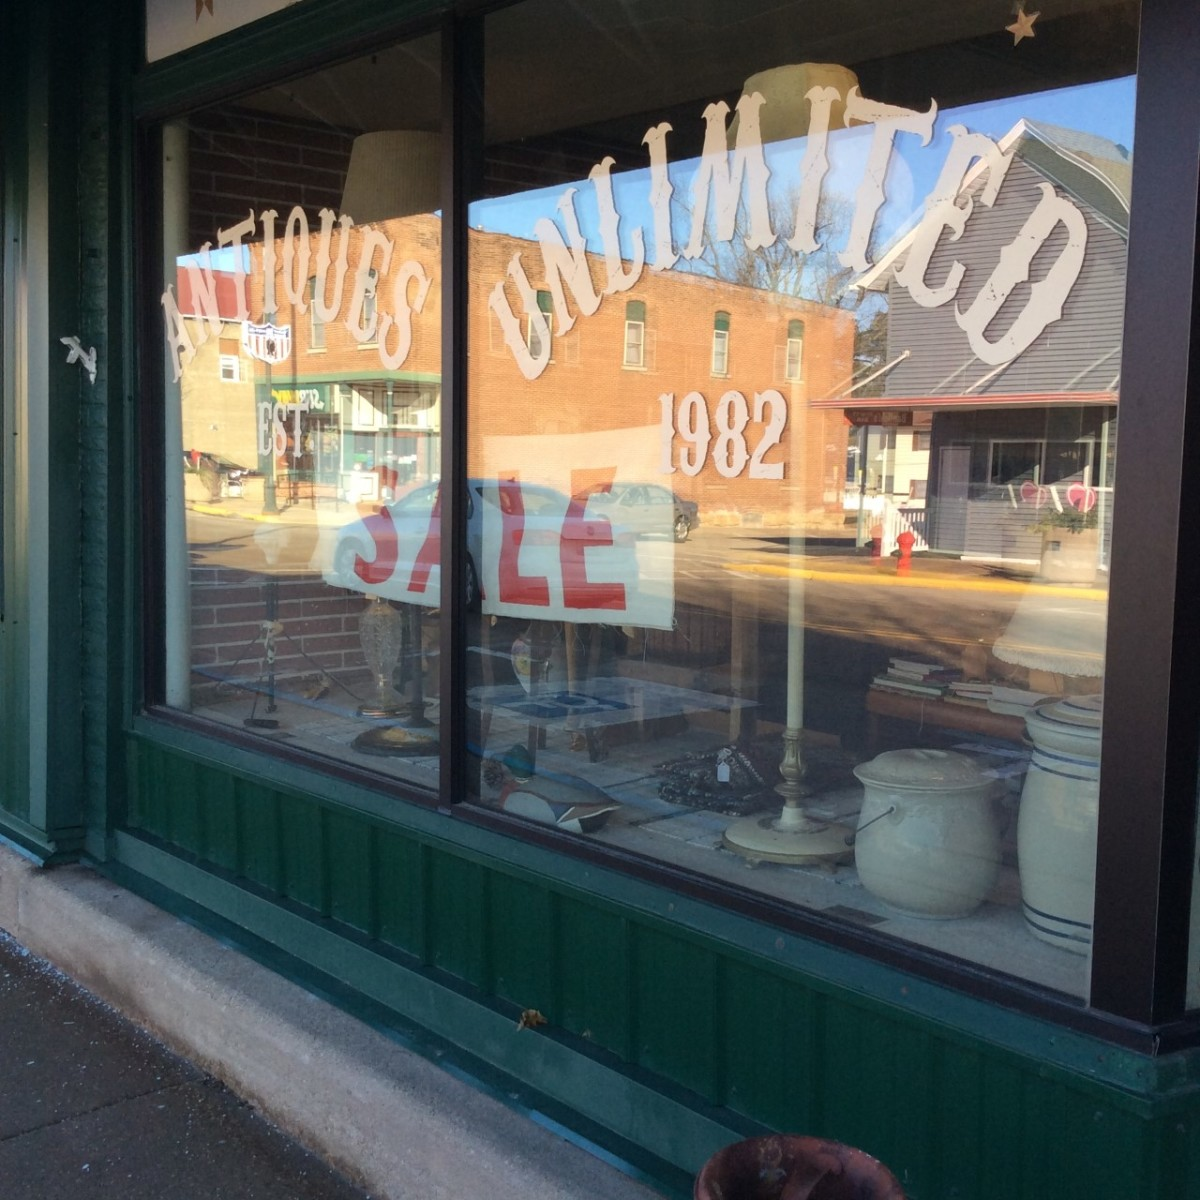 The outside window of the Cuba City, Wis., antiques mall Mullikin has her business in. It's a small town, but with five antiques stores in the town now, it's a destination for antiques shoppers, Mullikin said.